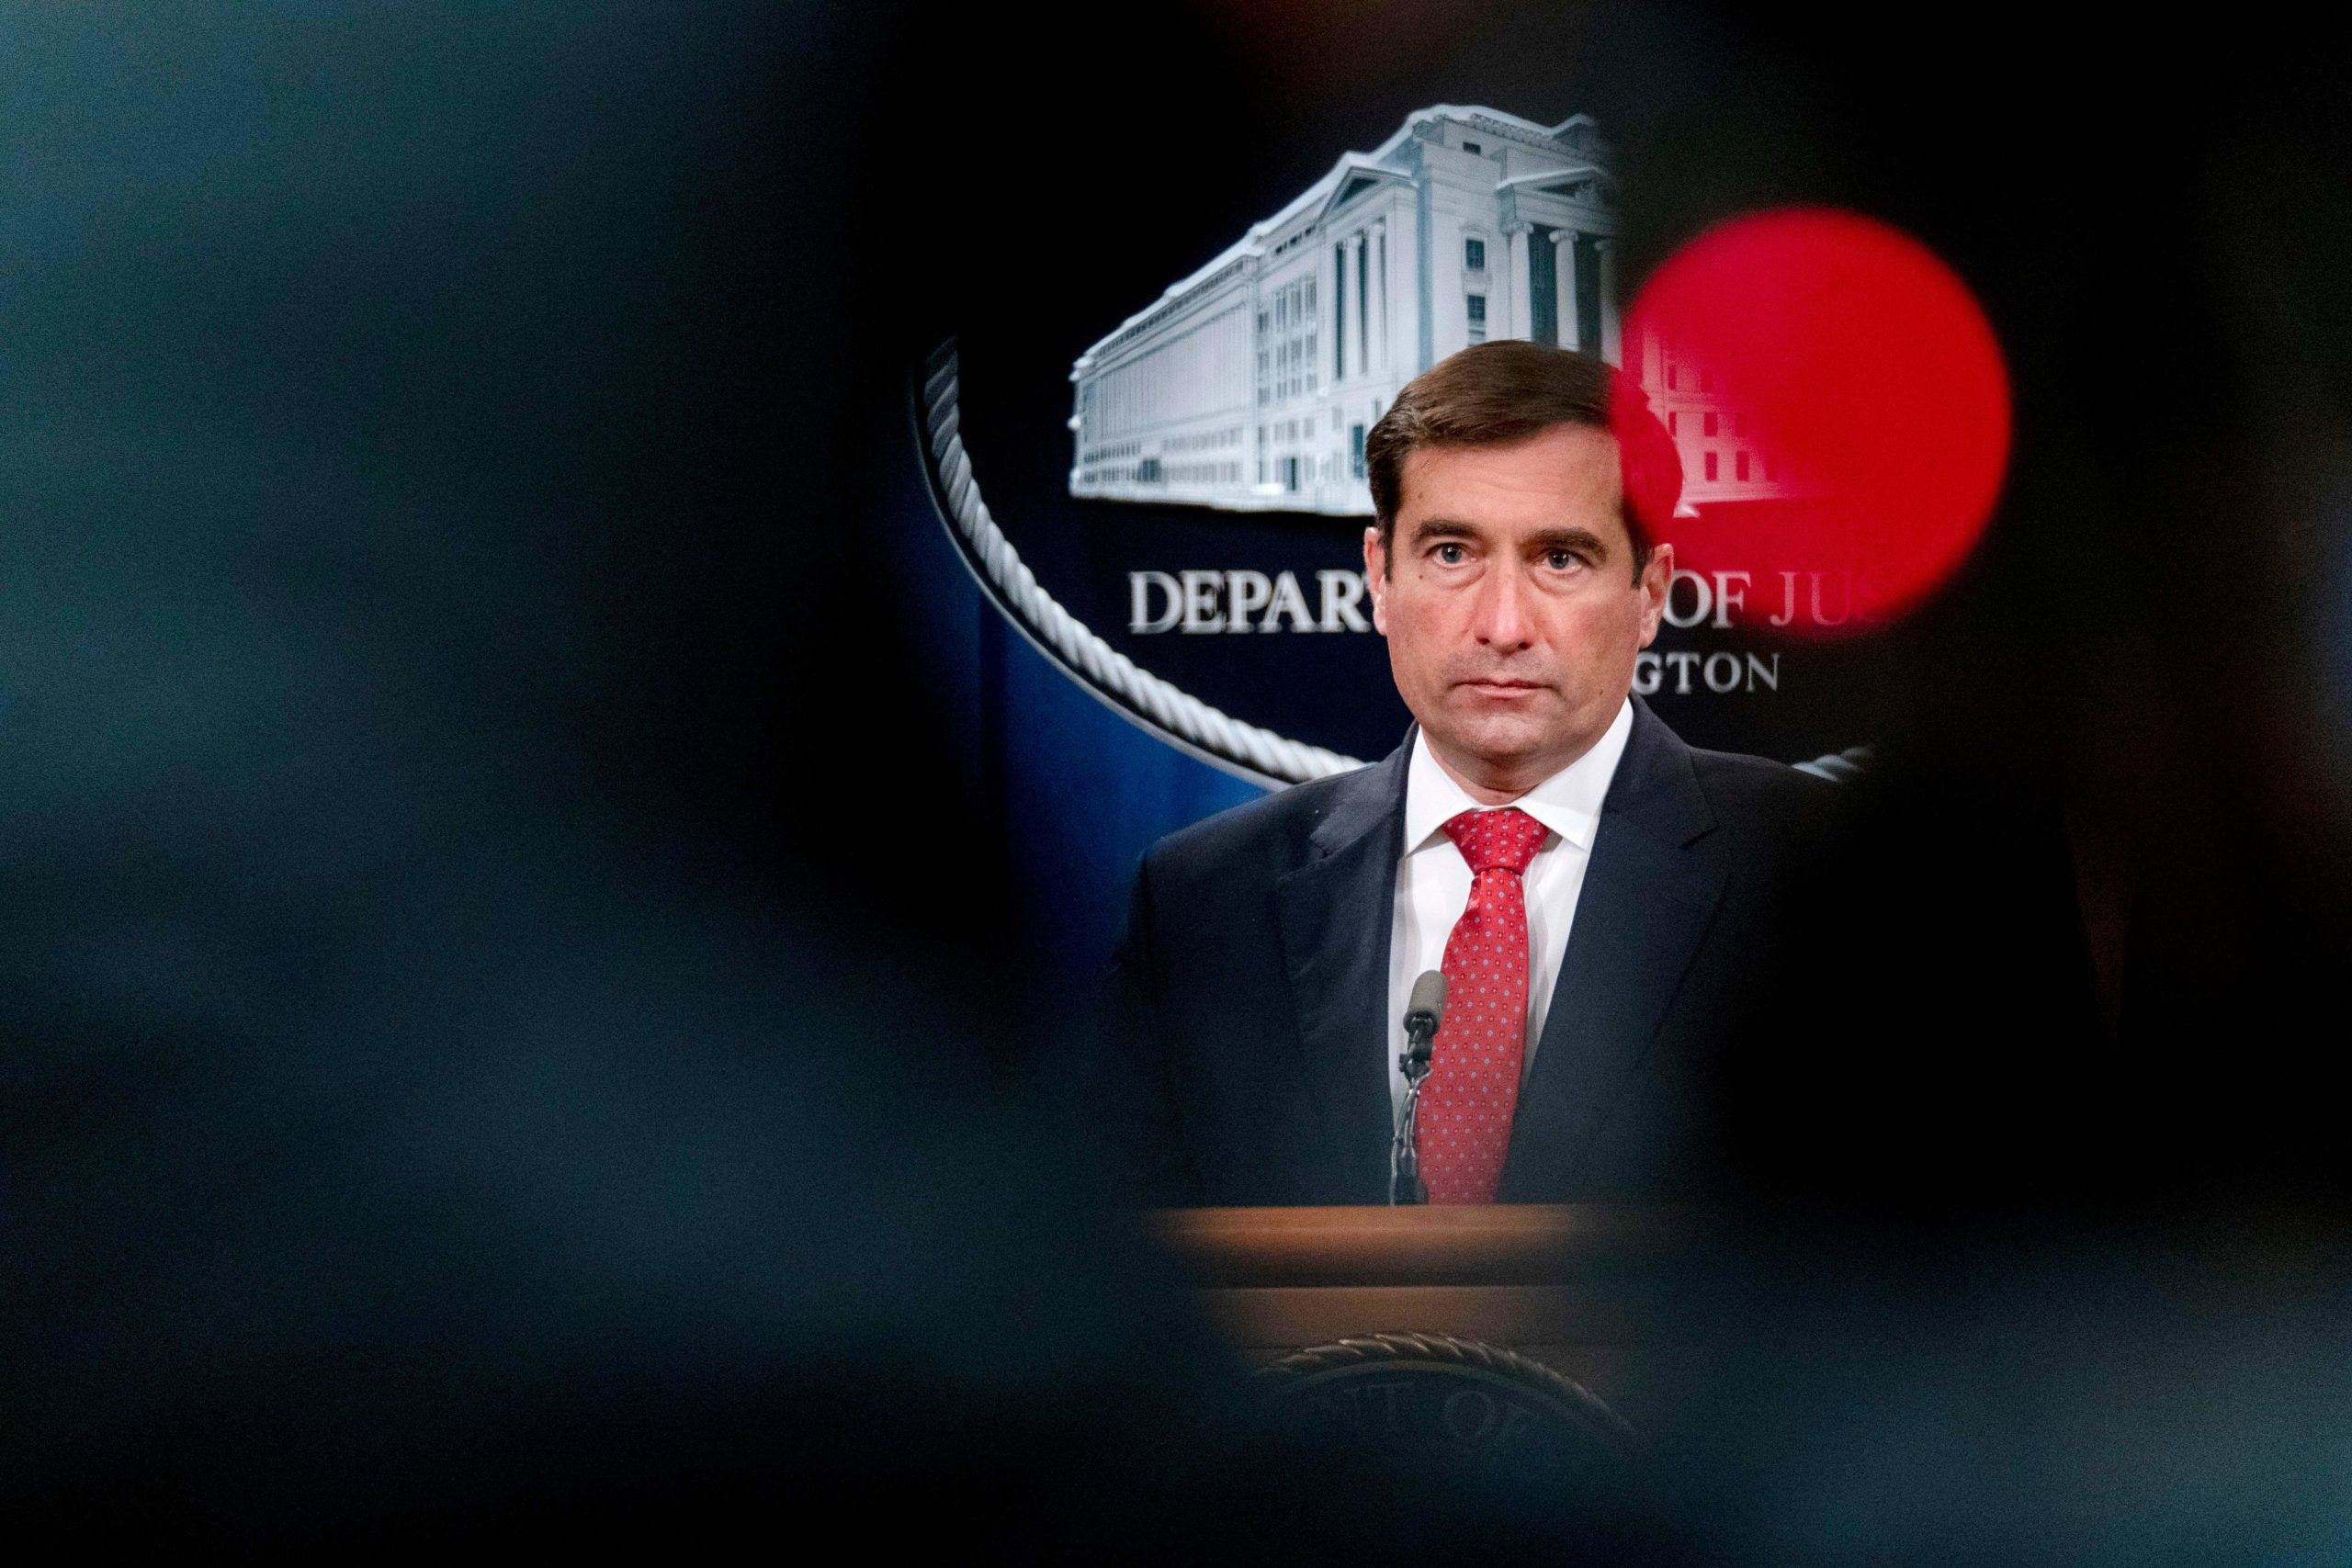 Assistant Attorney General for the National Security Division John Demers speaks at a news conference at the Department of Justice, October 19, 2020, in Washington, DC. (ANDREW HARNIK/POOL/AFP via Getty Images)